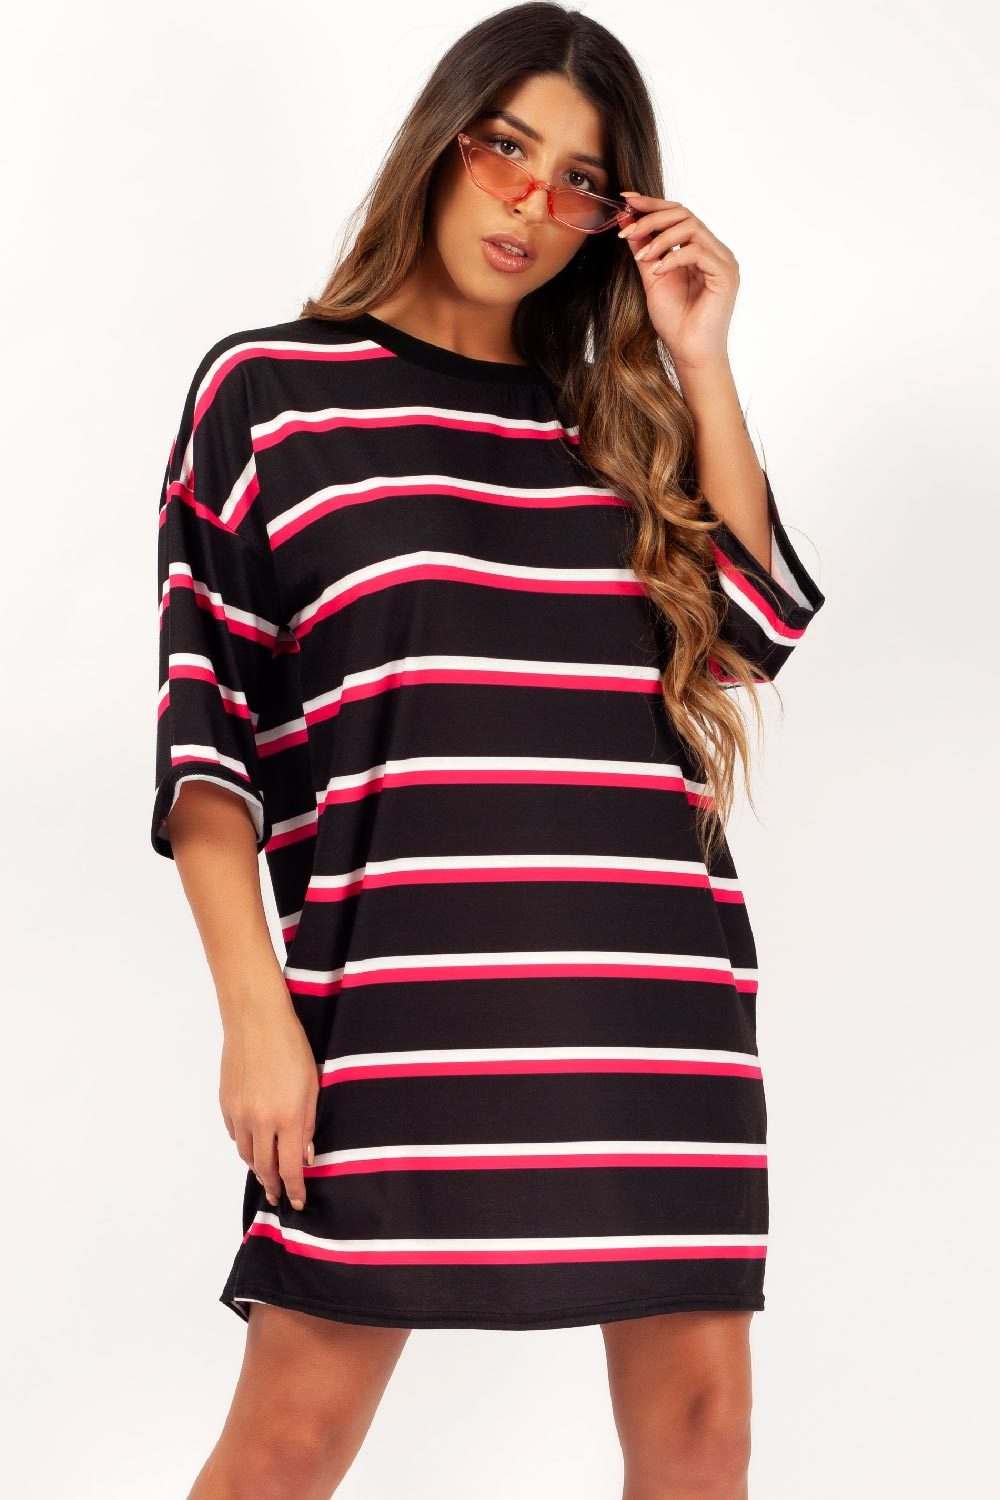 oversized t shirt dress styledup fashion